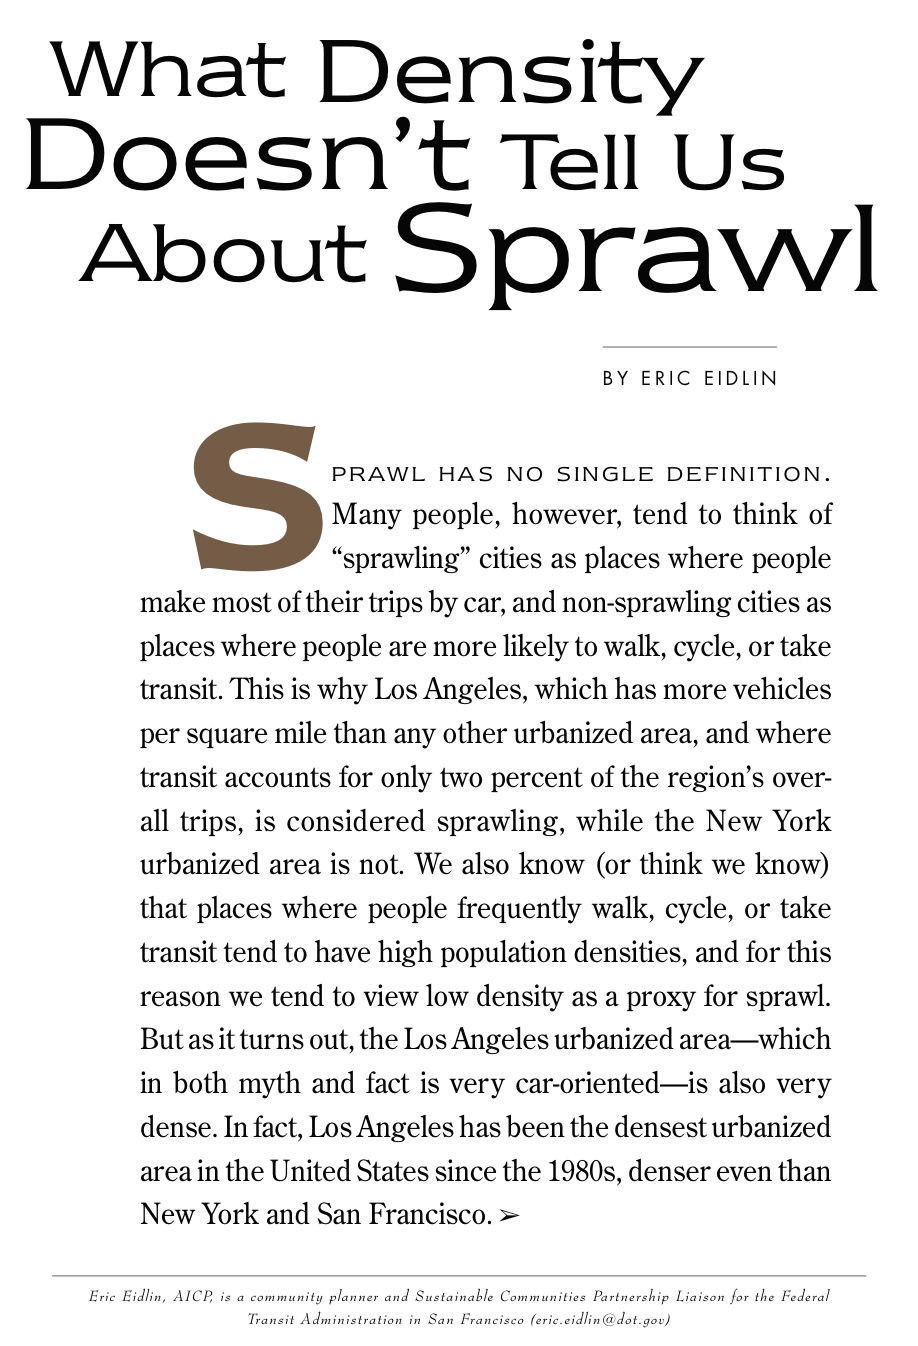 What Density Doesn't Tell Us About Sprawl